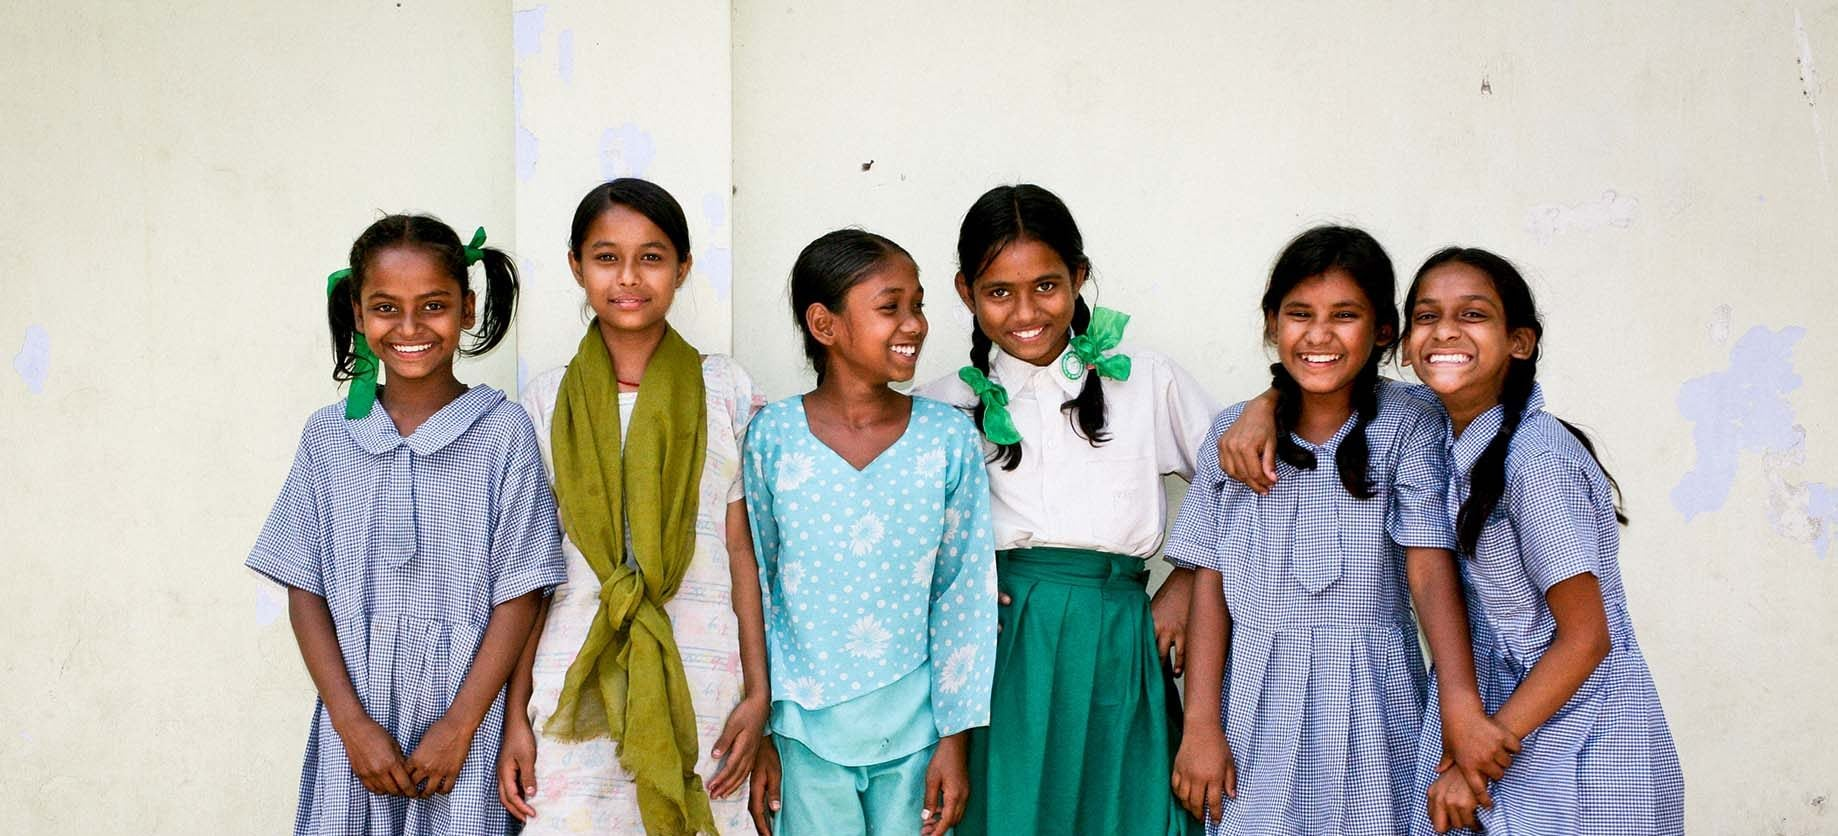 young girls in colorful clothes smiling into the camera